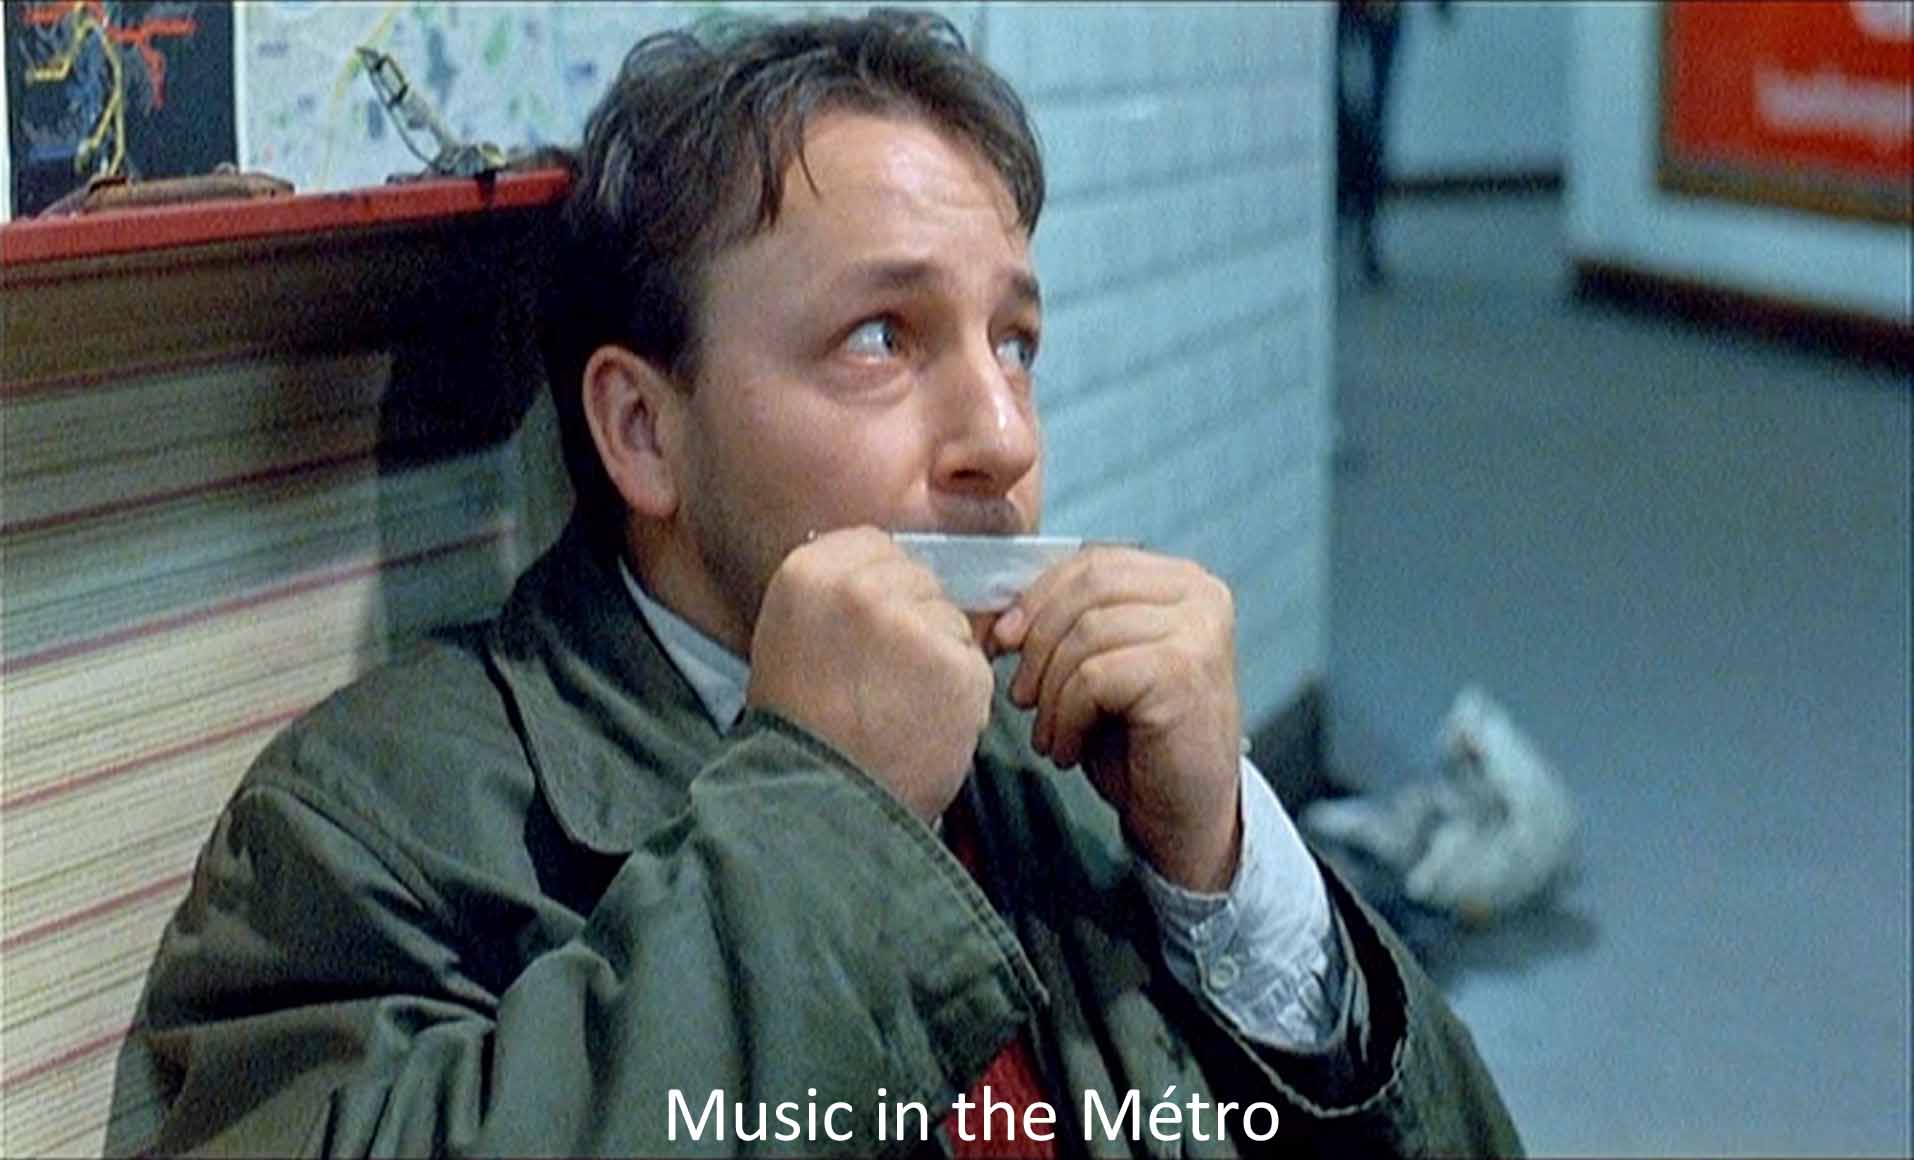 Music in the Métro